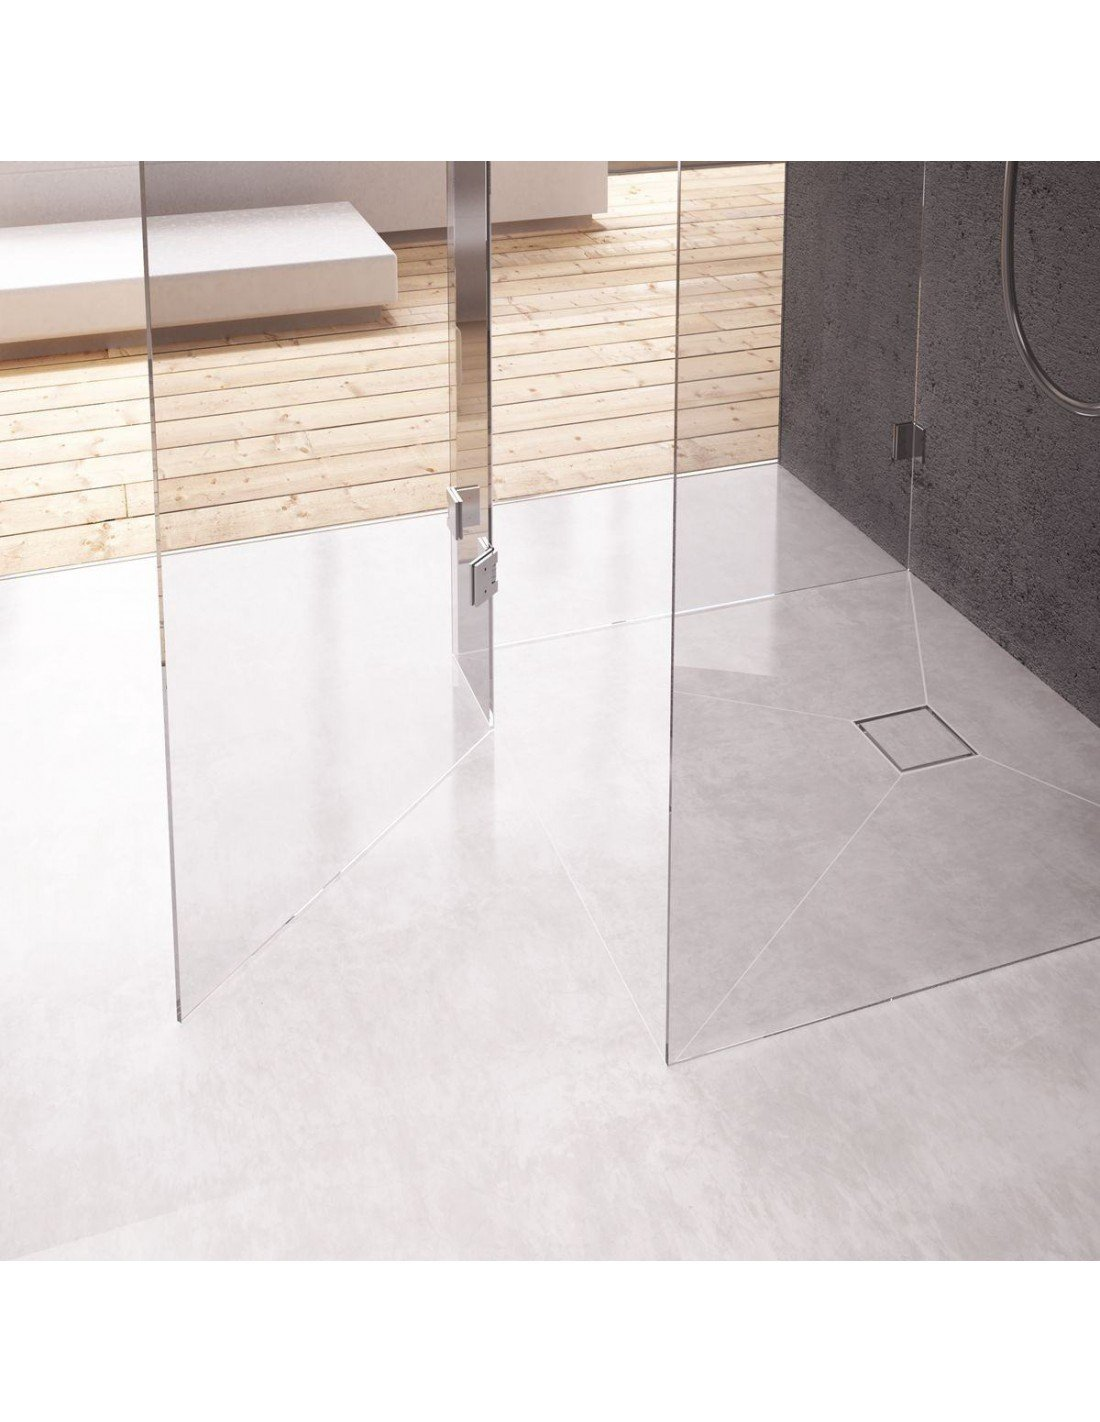 Wet Room Designs Uk: Wet Room Kit 1000 X 1000 Point Pure